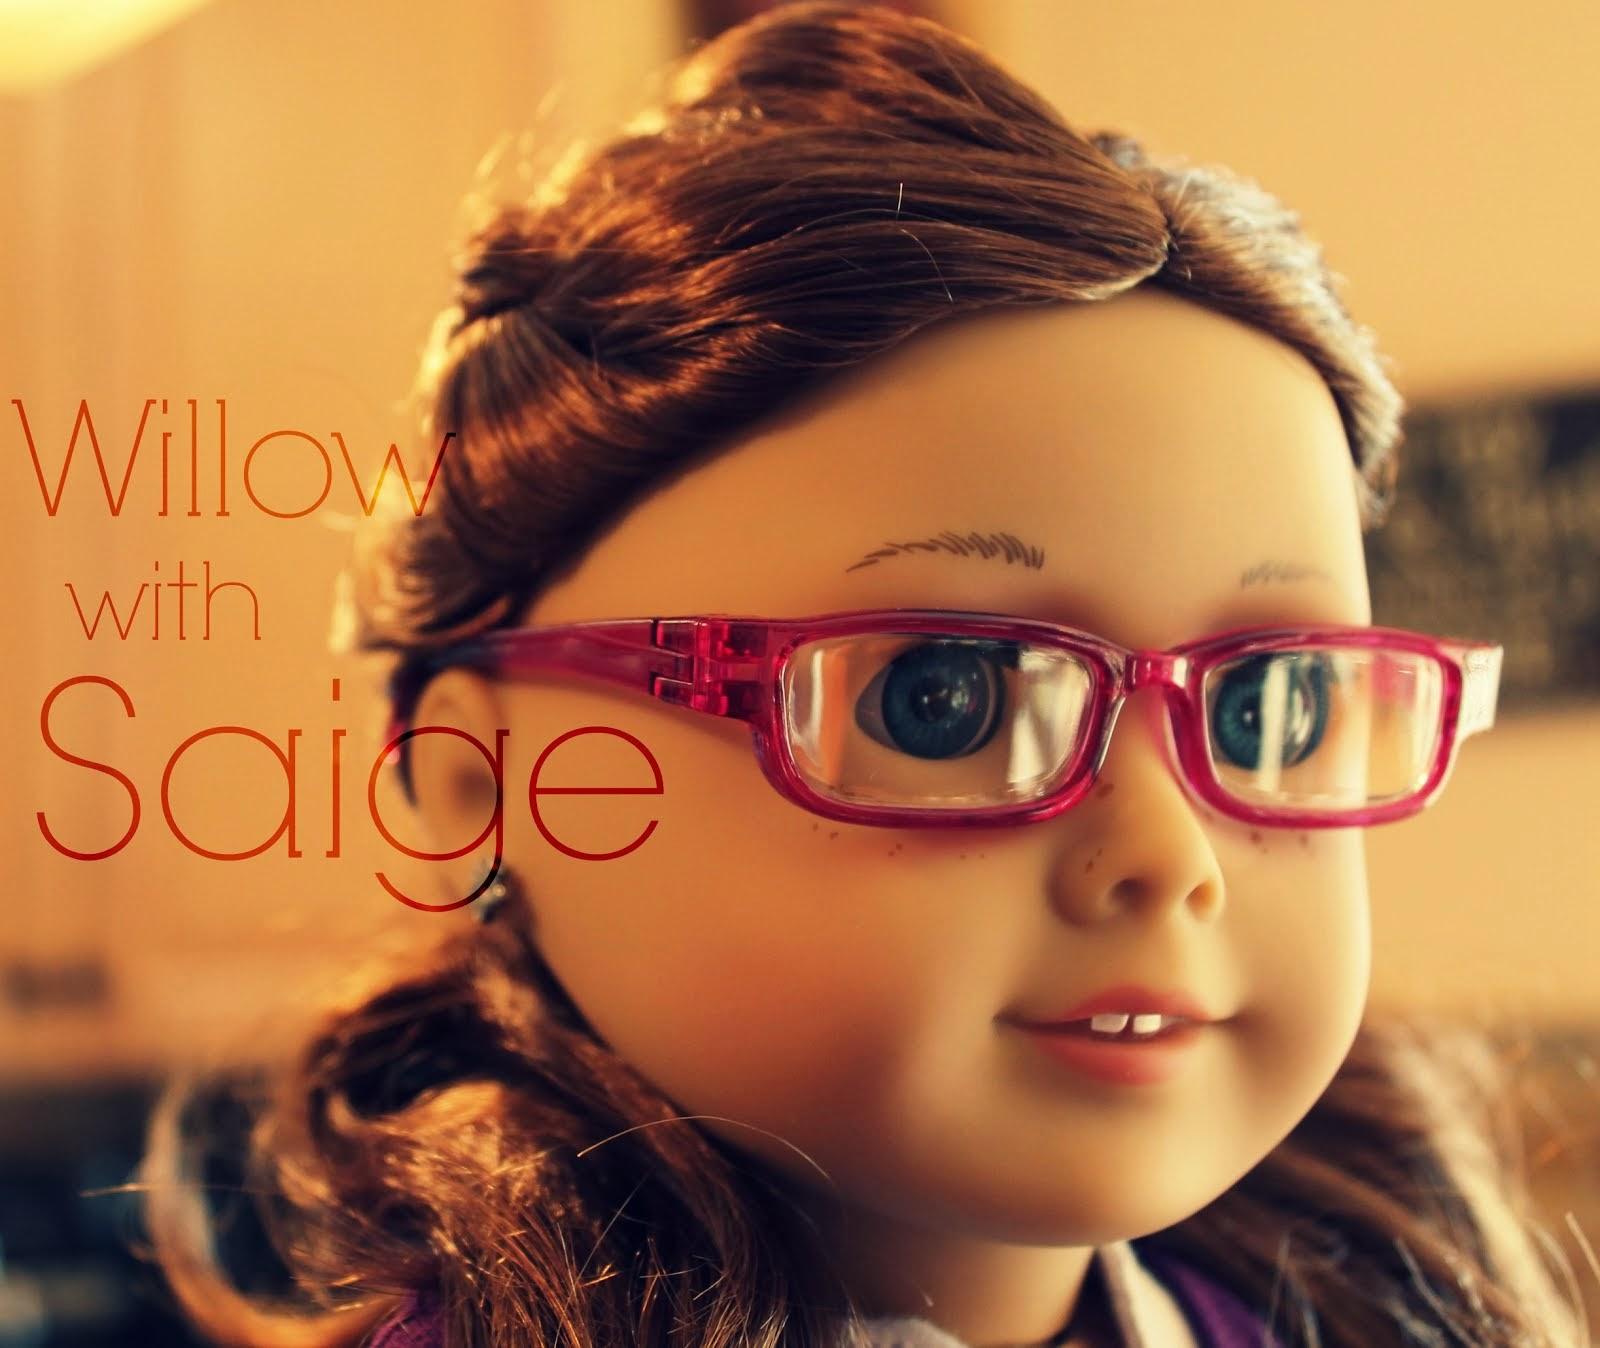 Willow with Saige